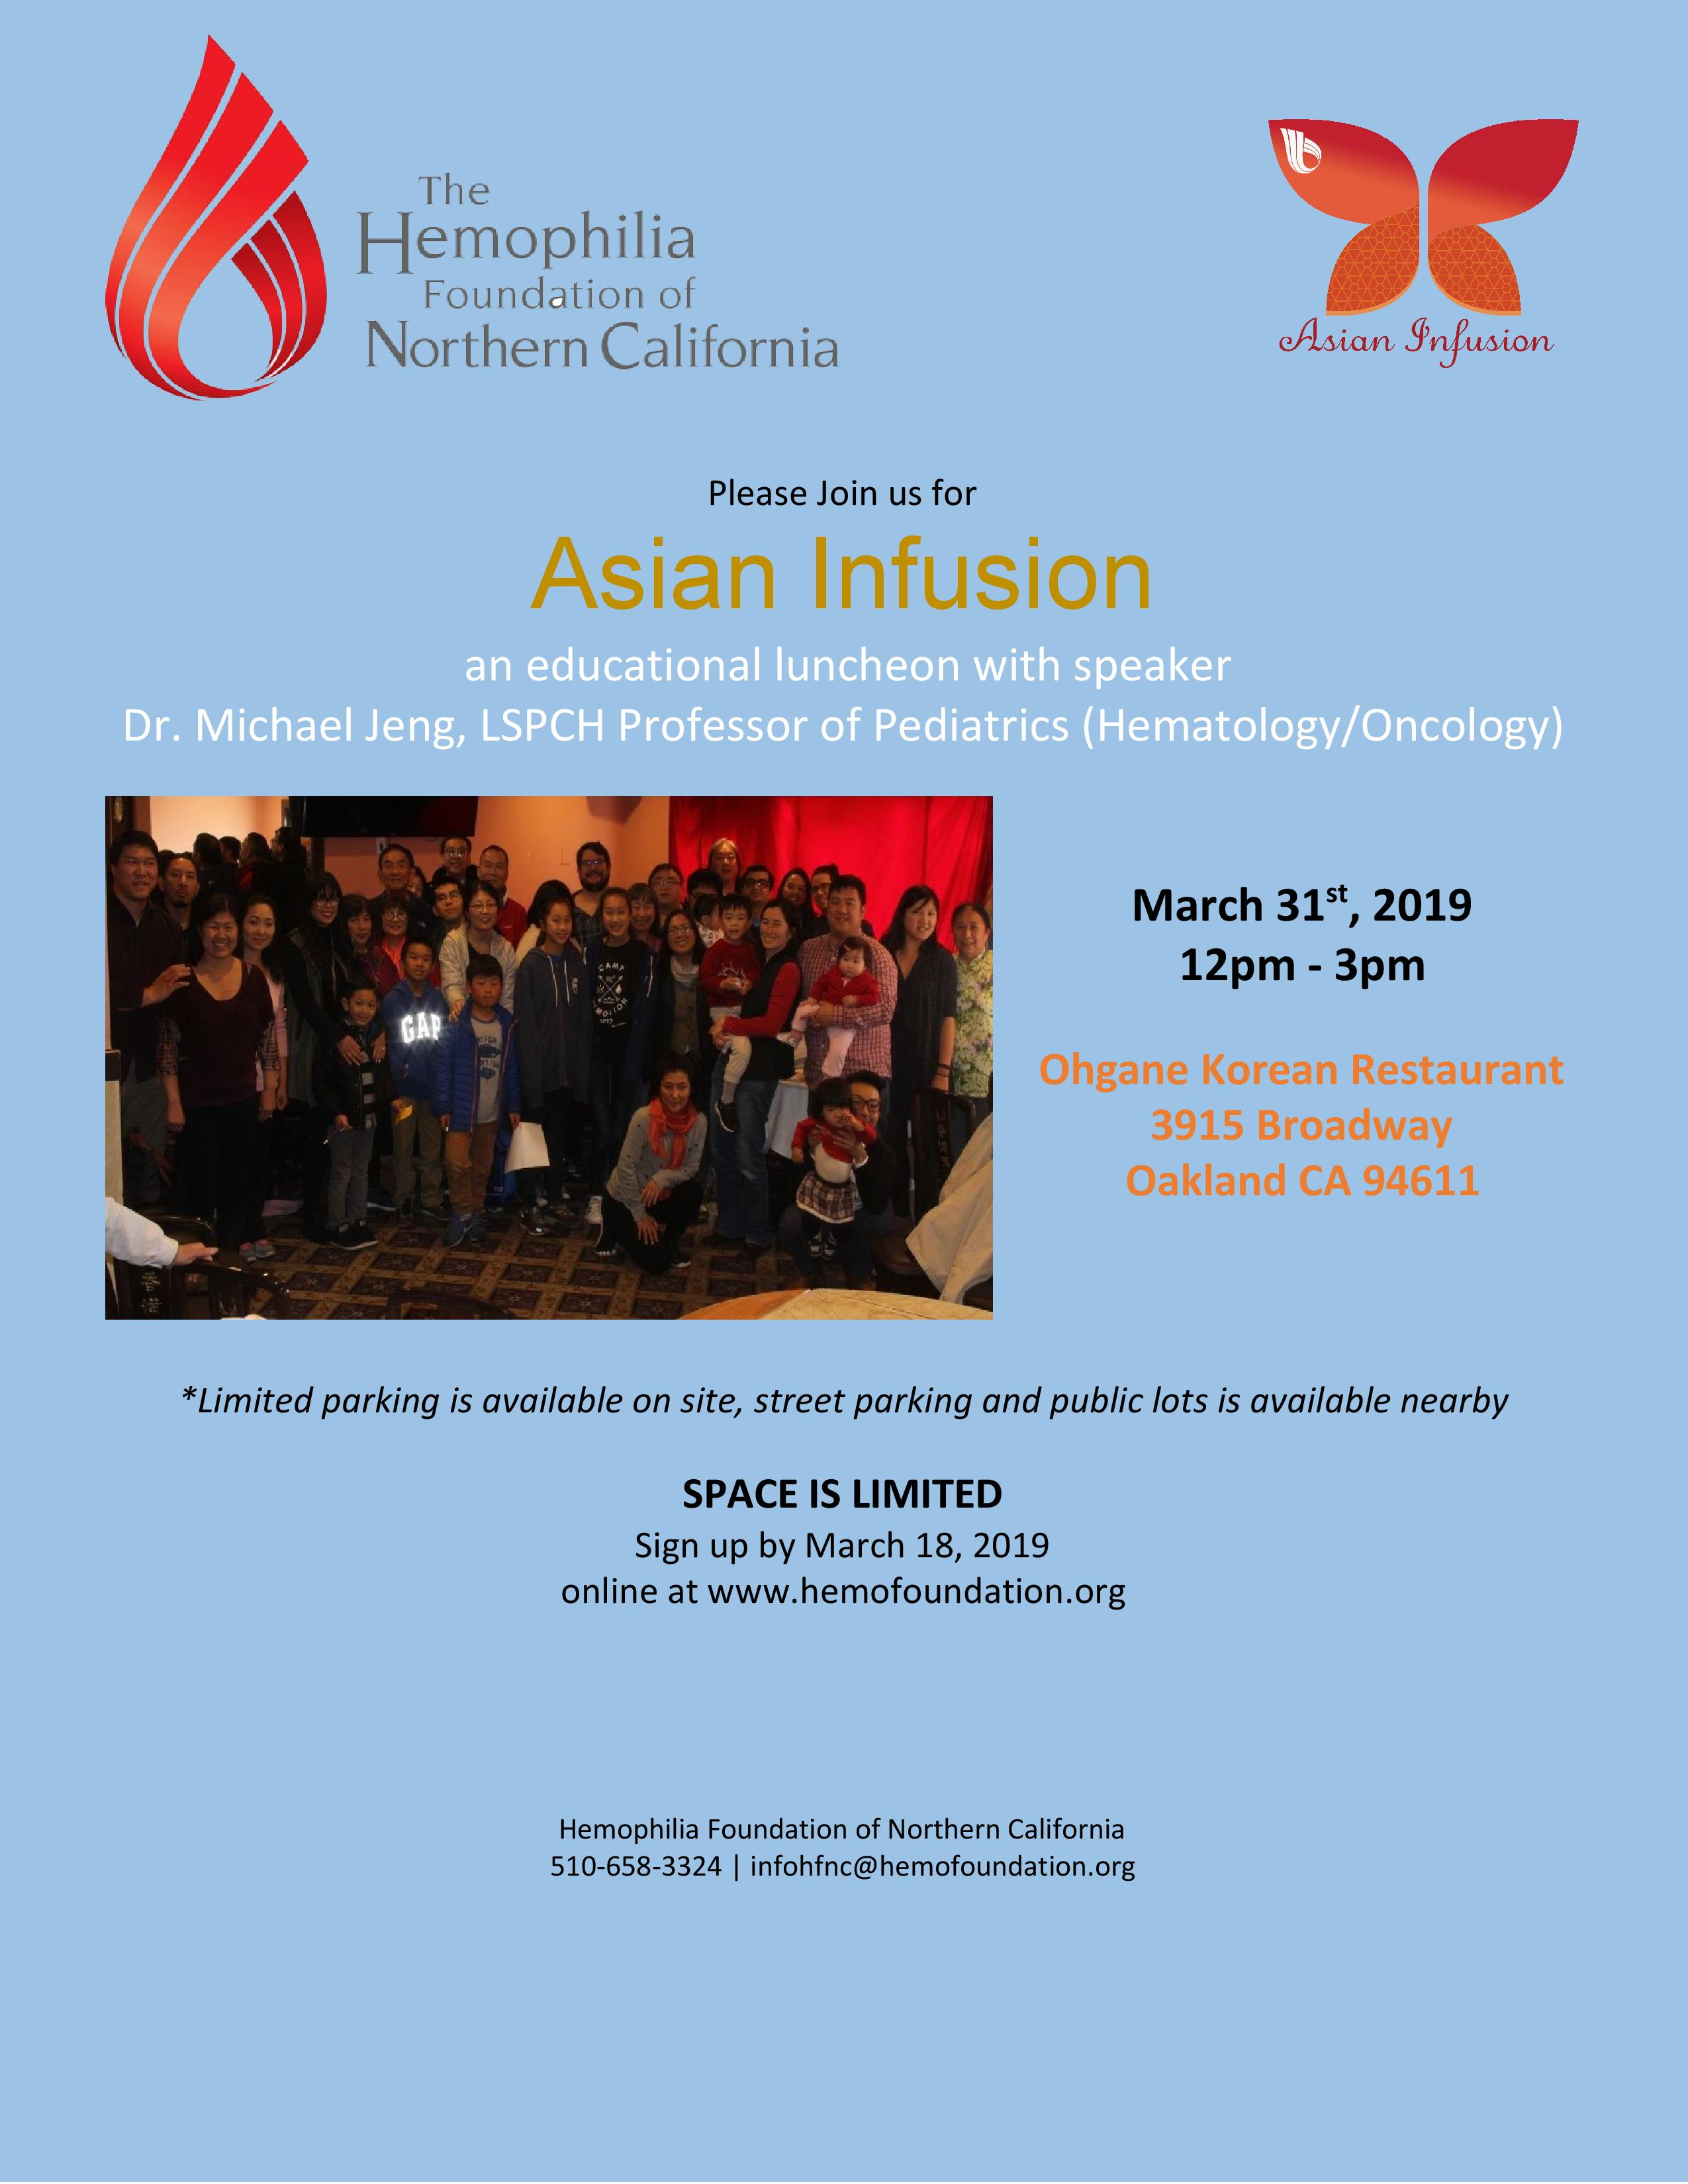 Asian Infusion